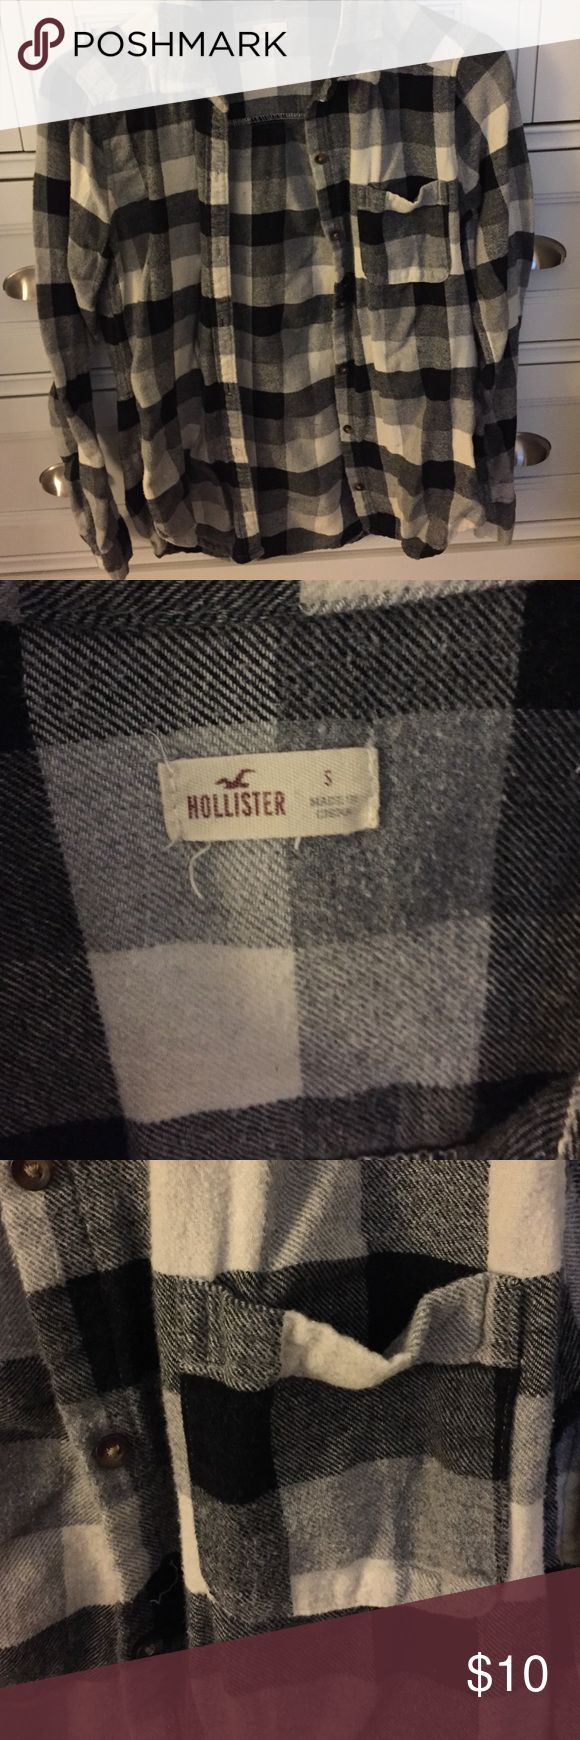 Black and White Flannel Flannel material. Fits well. Comfortable and adorable. I only wore this a few times but every time I did, I loved it! You will too ☺️ Hollister Tops Button Down Shirts